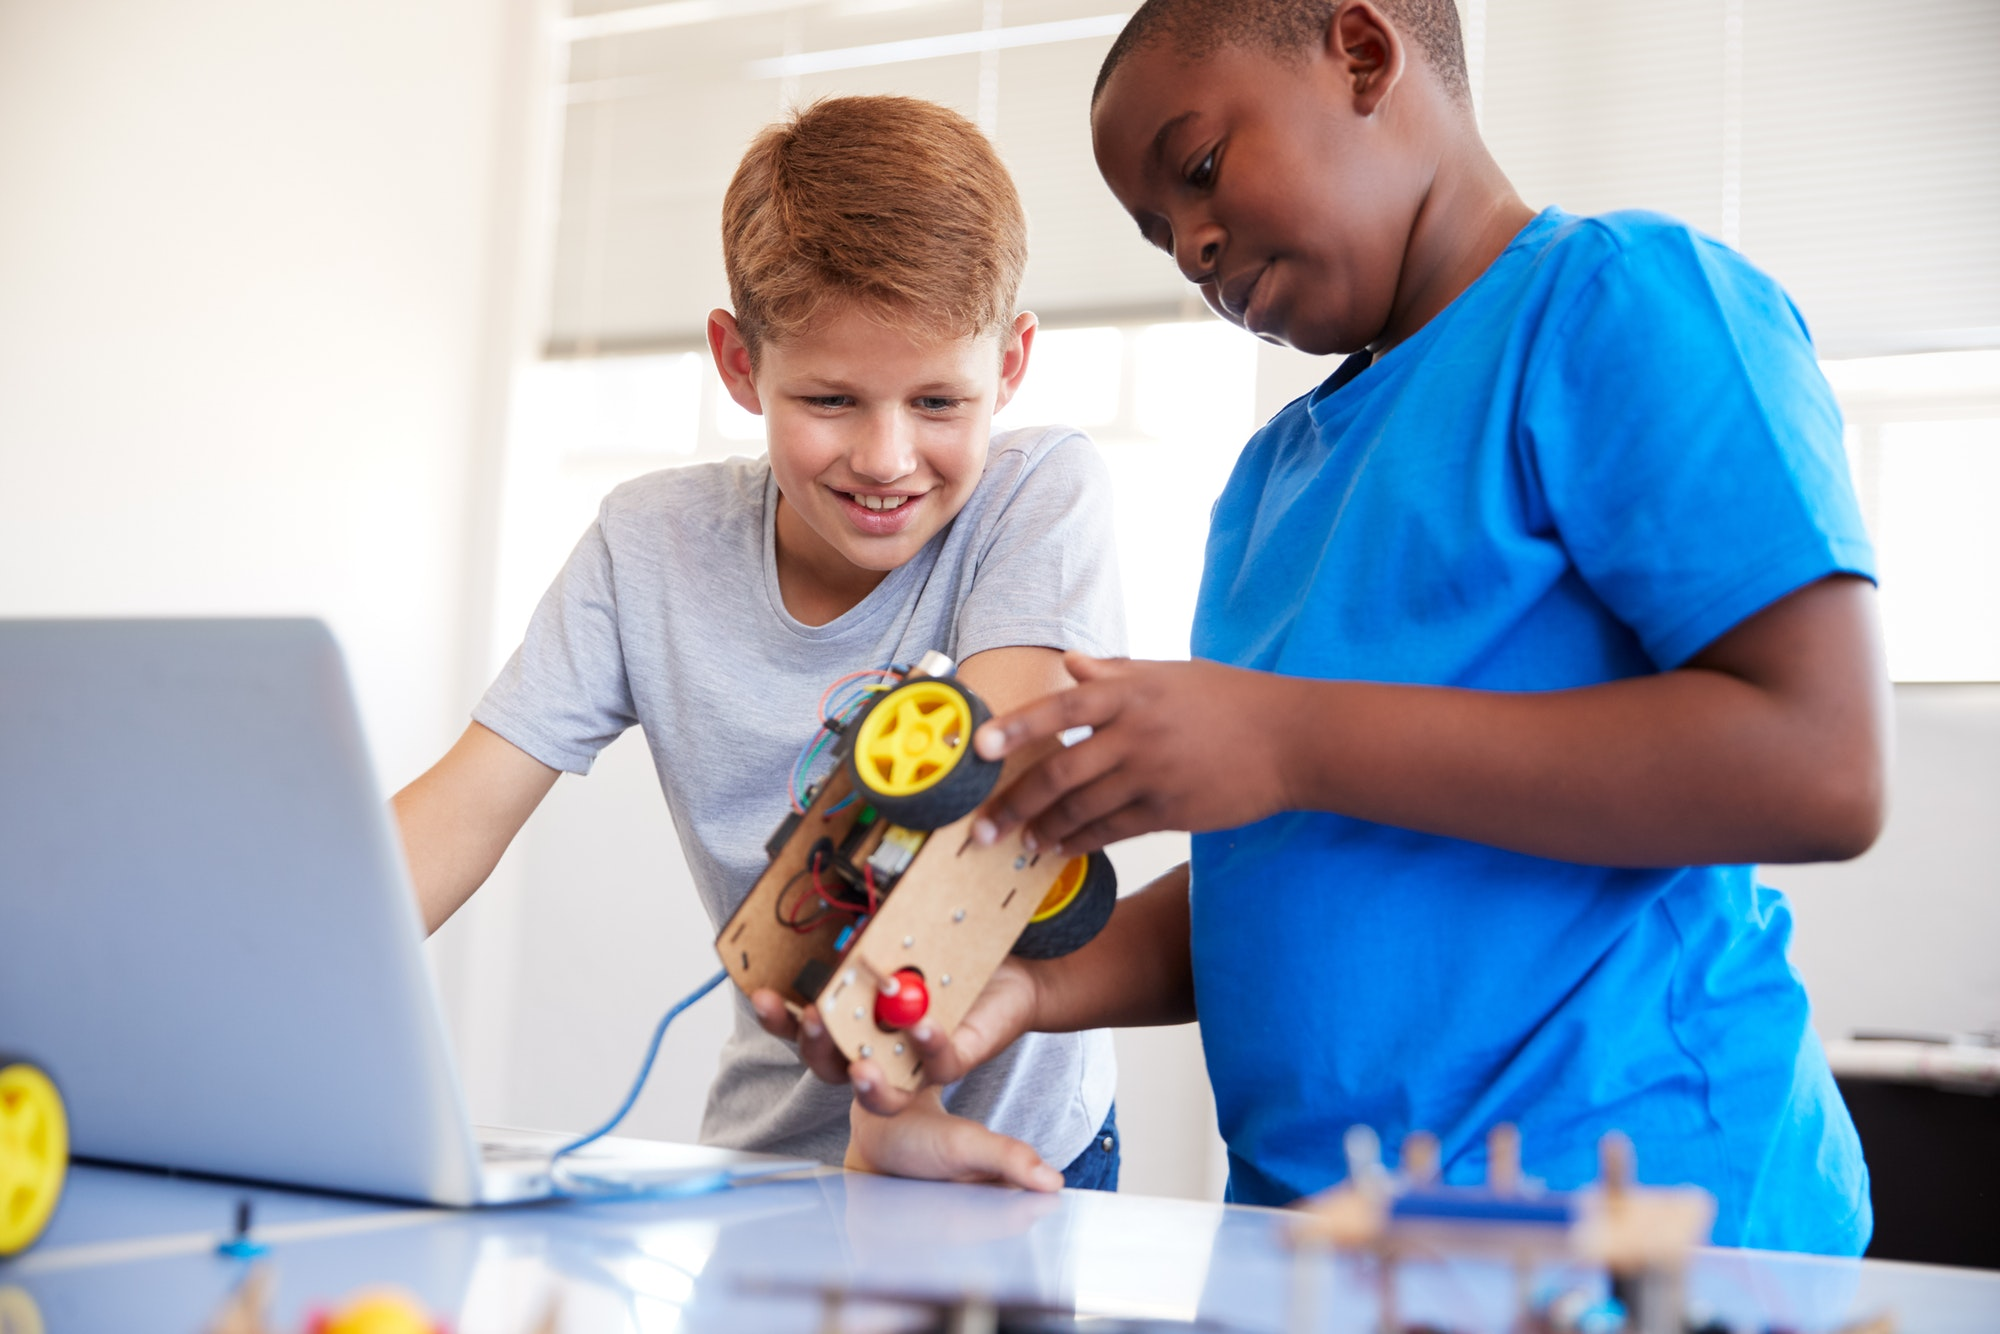 two-male-students-building-and-programing-robot-vehicle-in-after-school-computer-coding-class.jpg